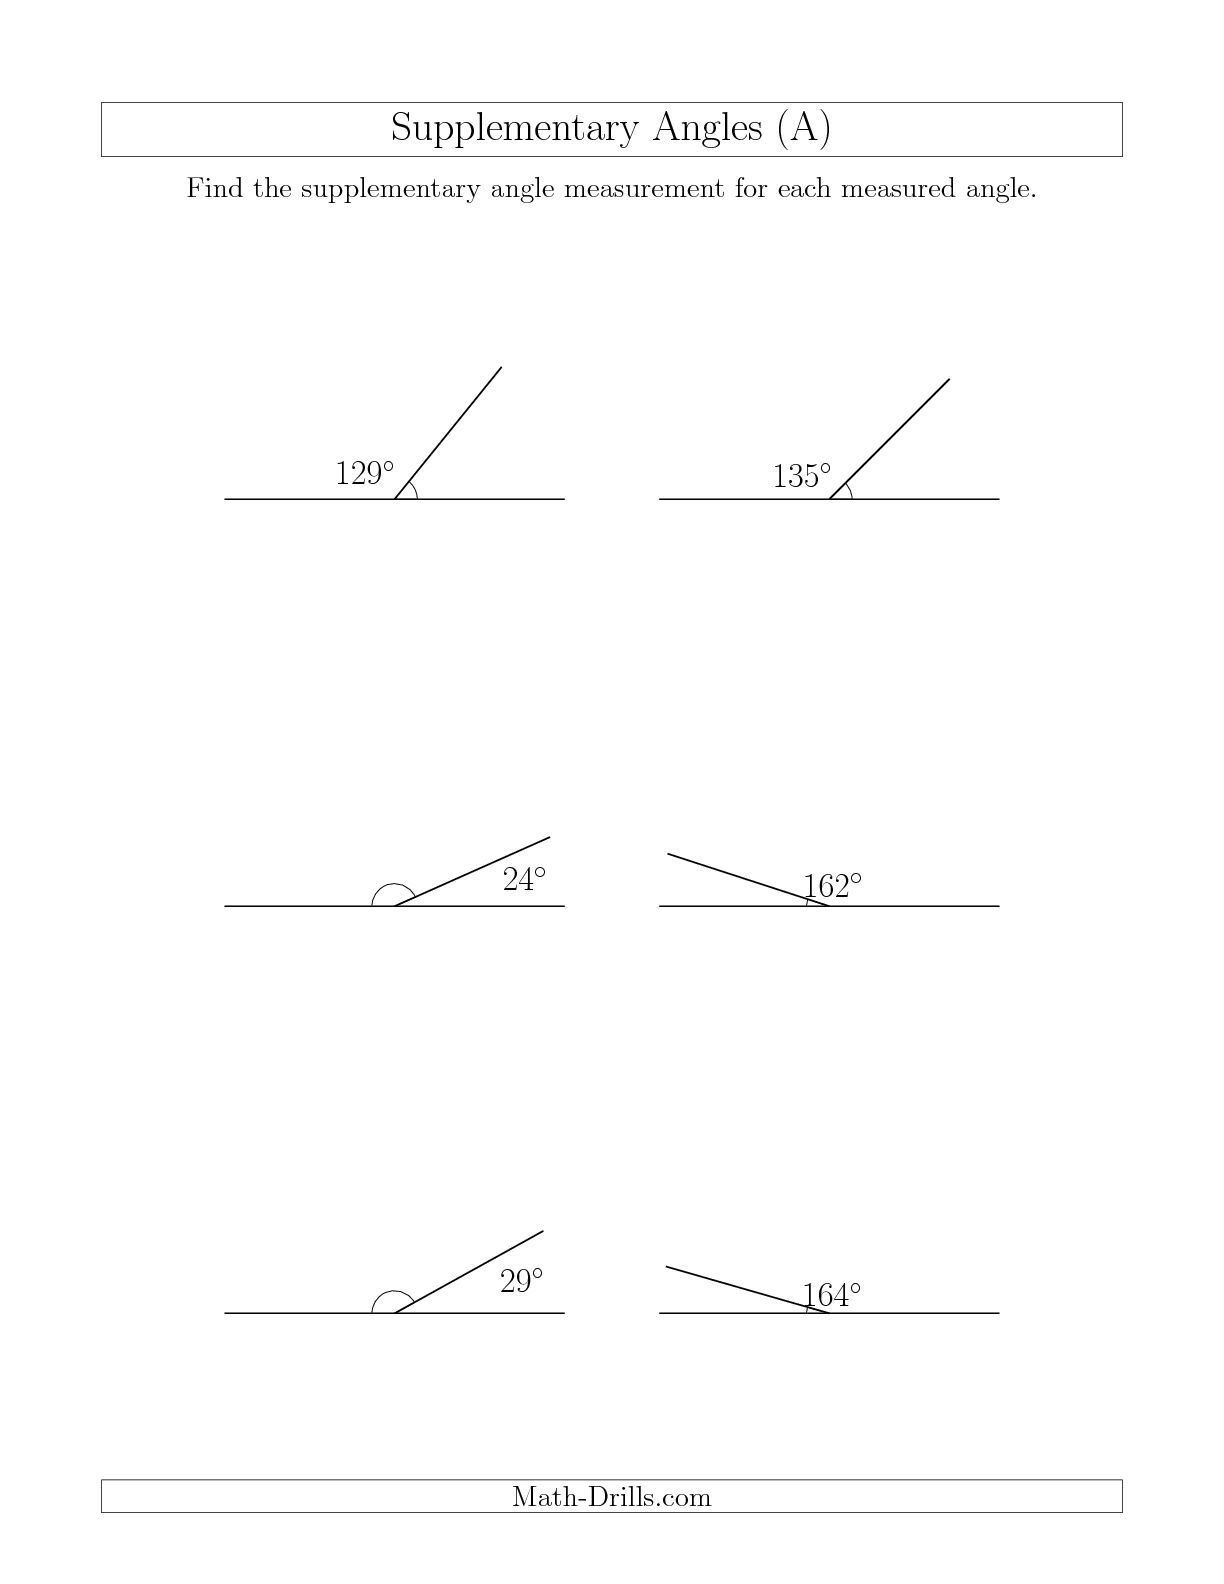 hight resolution of The Supplementary Angle Relationships (A) math worksheet from the Geometry  Worksheets page at Math-Dr…   Angles worksheet